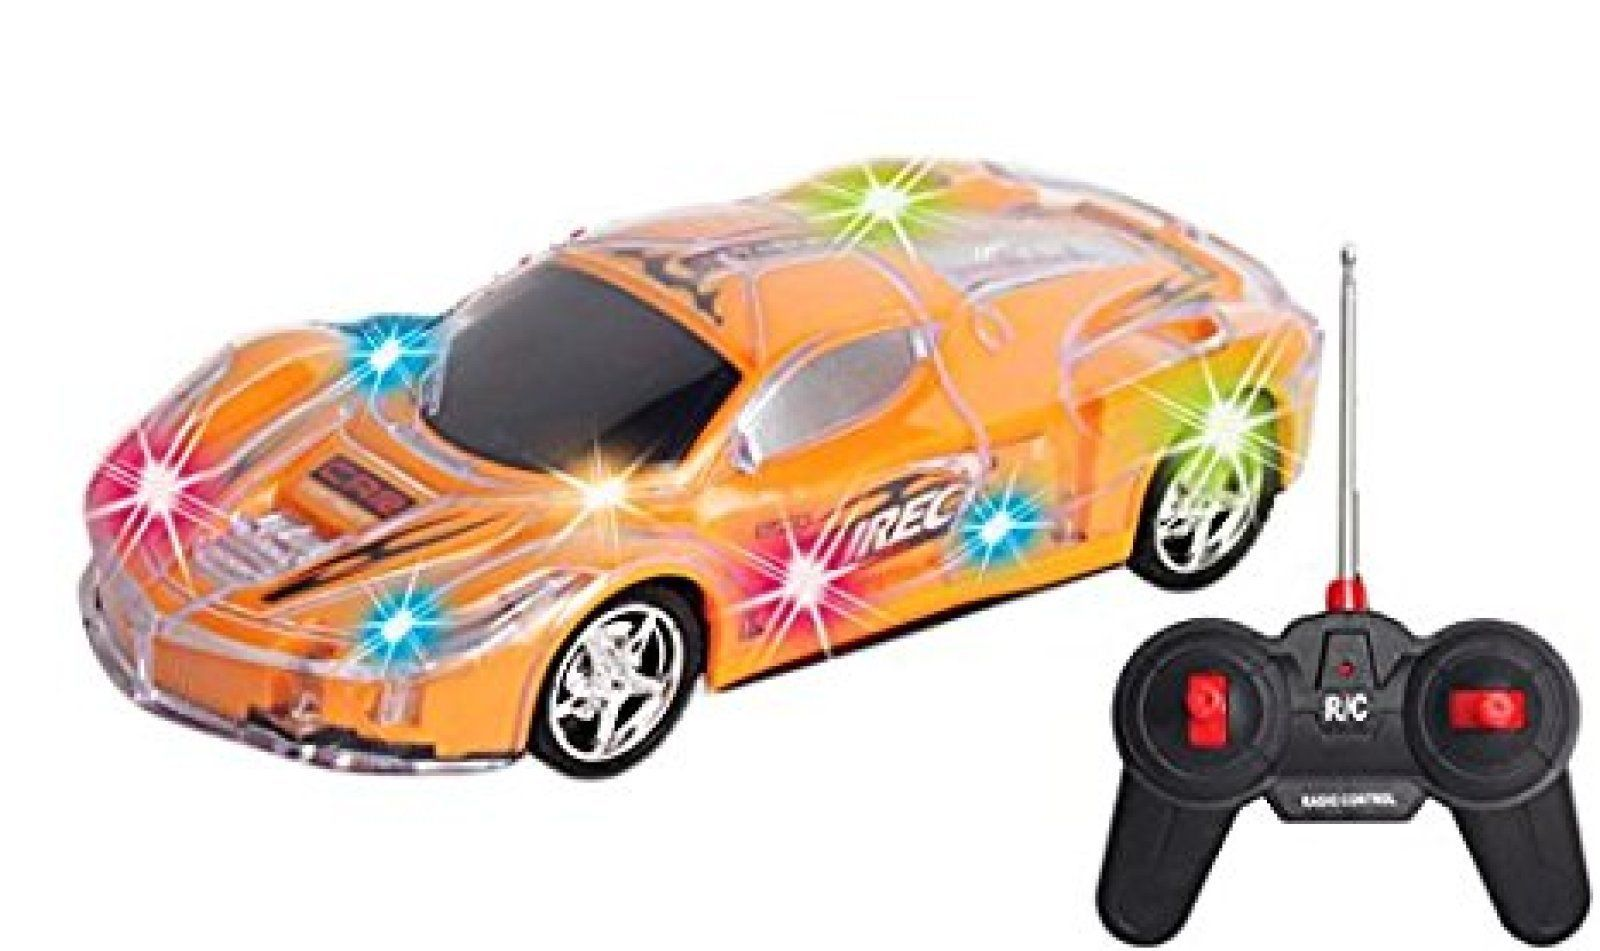 8 9 Toys For Birthdays : Toys for boys truck kids toddler racing rc car 3 4 5 6 7 8 9 year